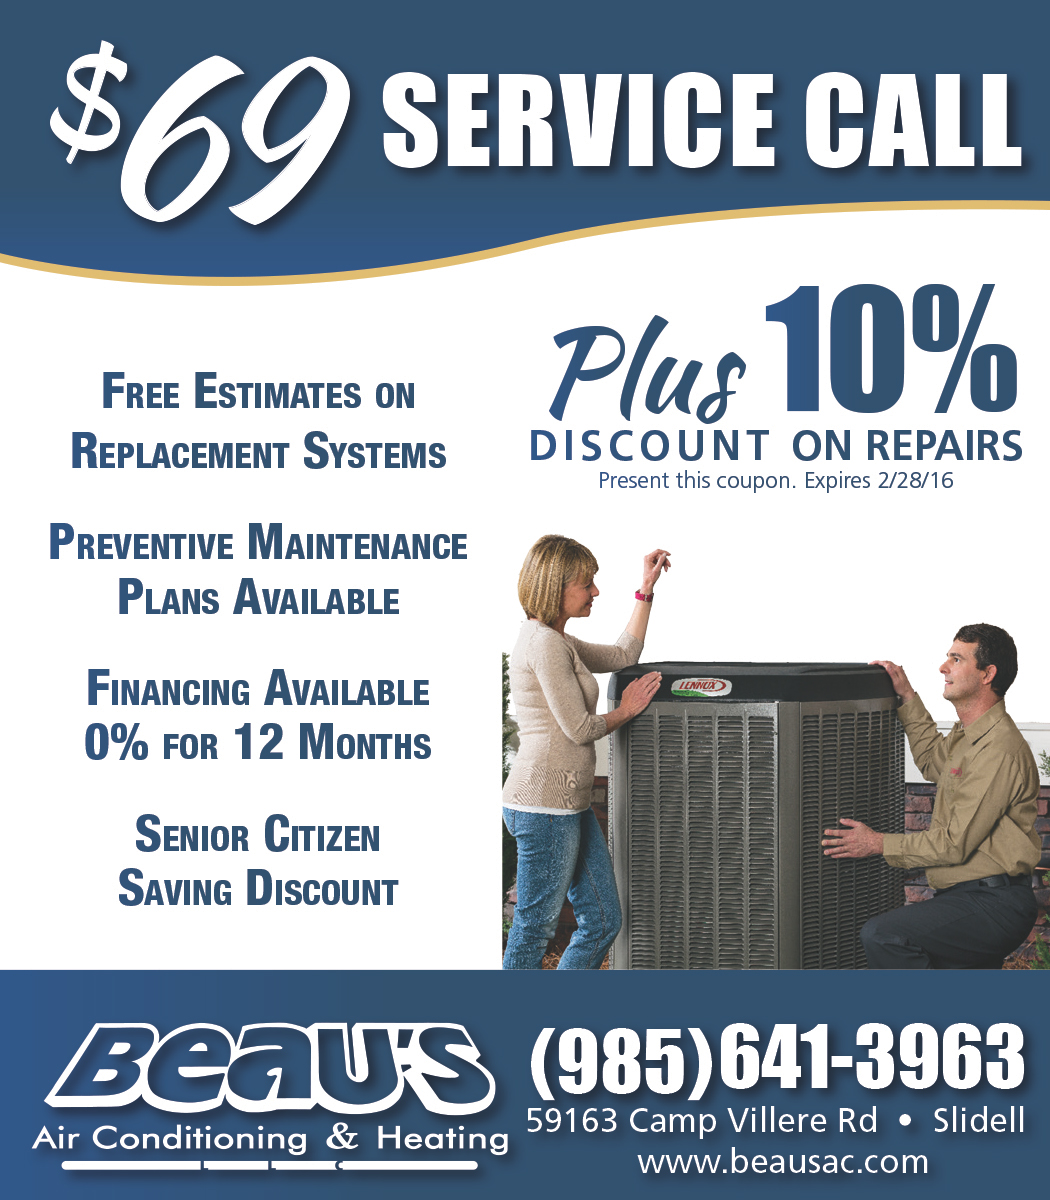 beaus-air-conditioning-ad-e49d1c0c.jpg